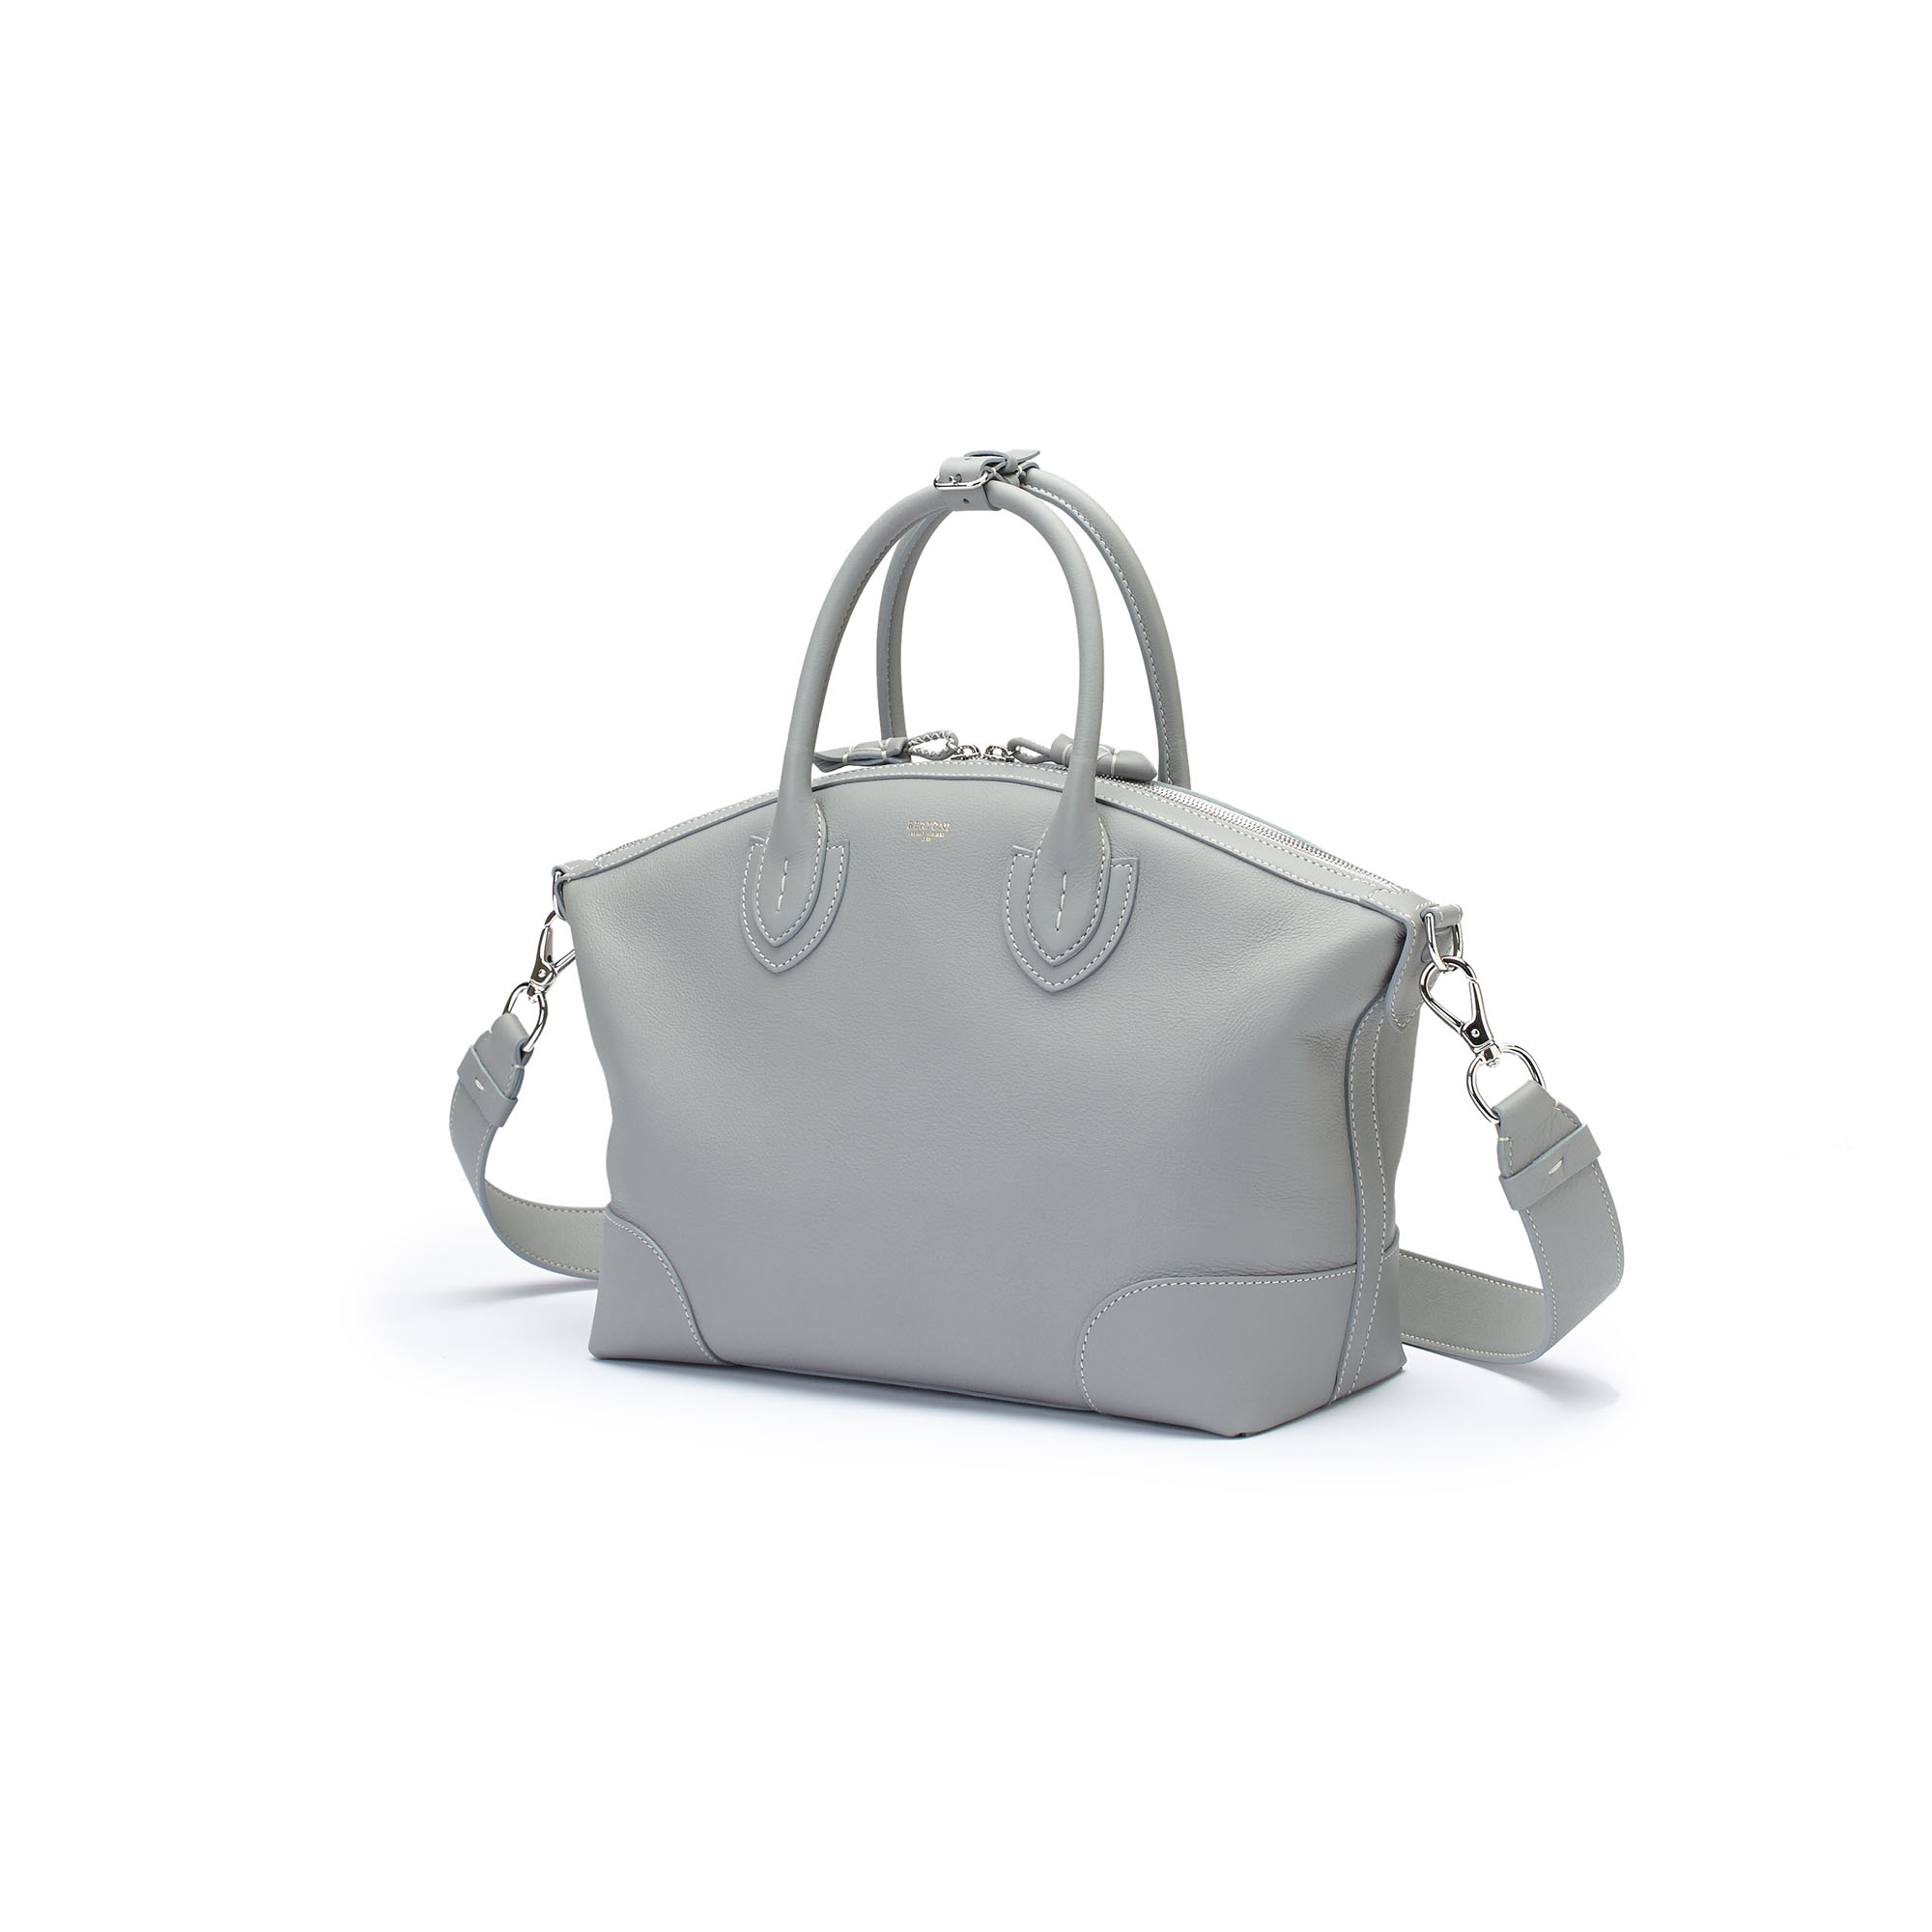 The sage soft calf Anija bag by Bertoni 1949 04